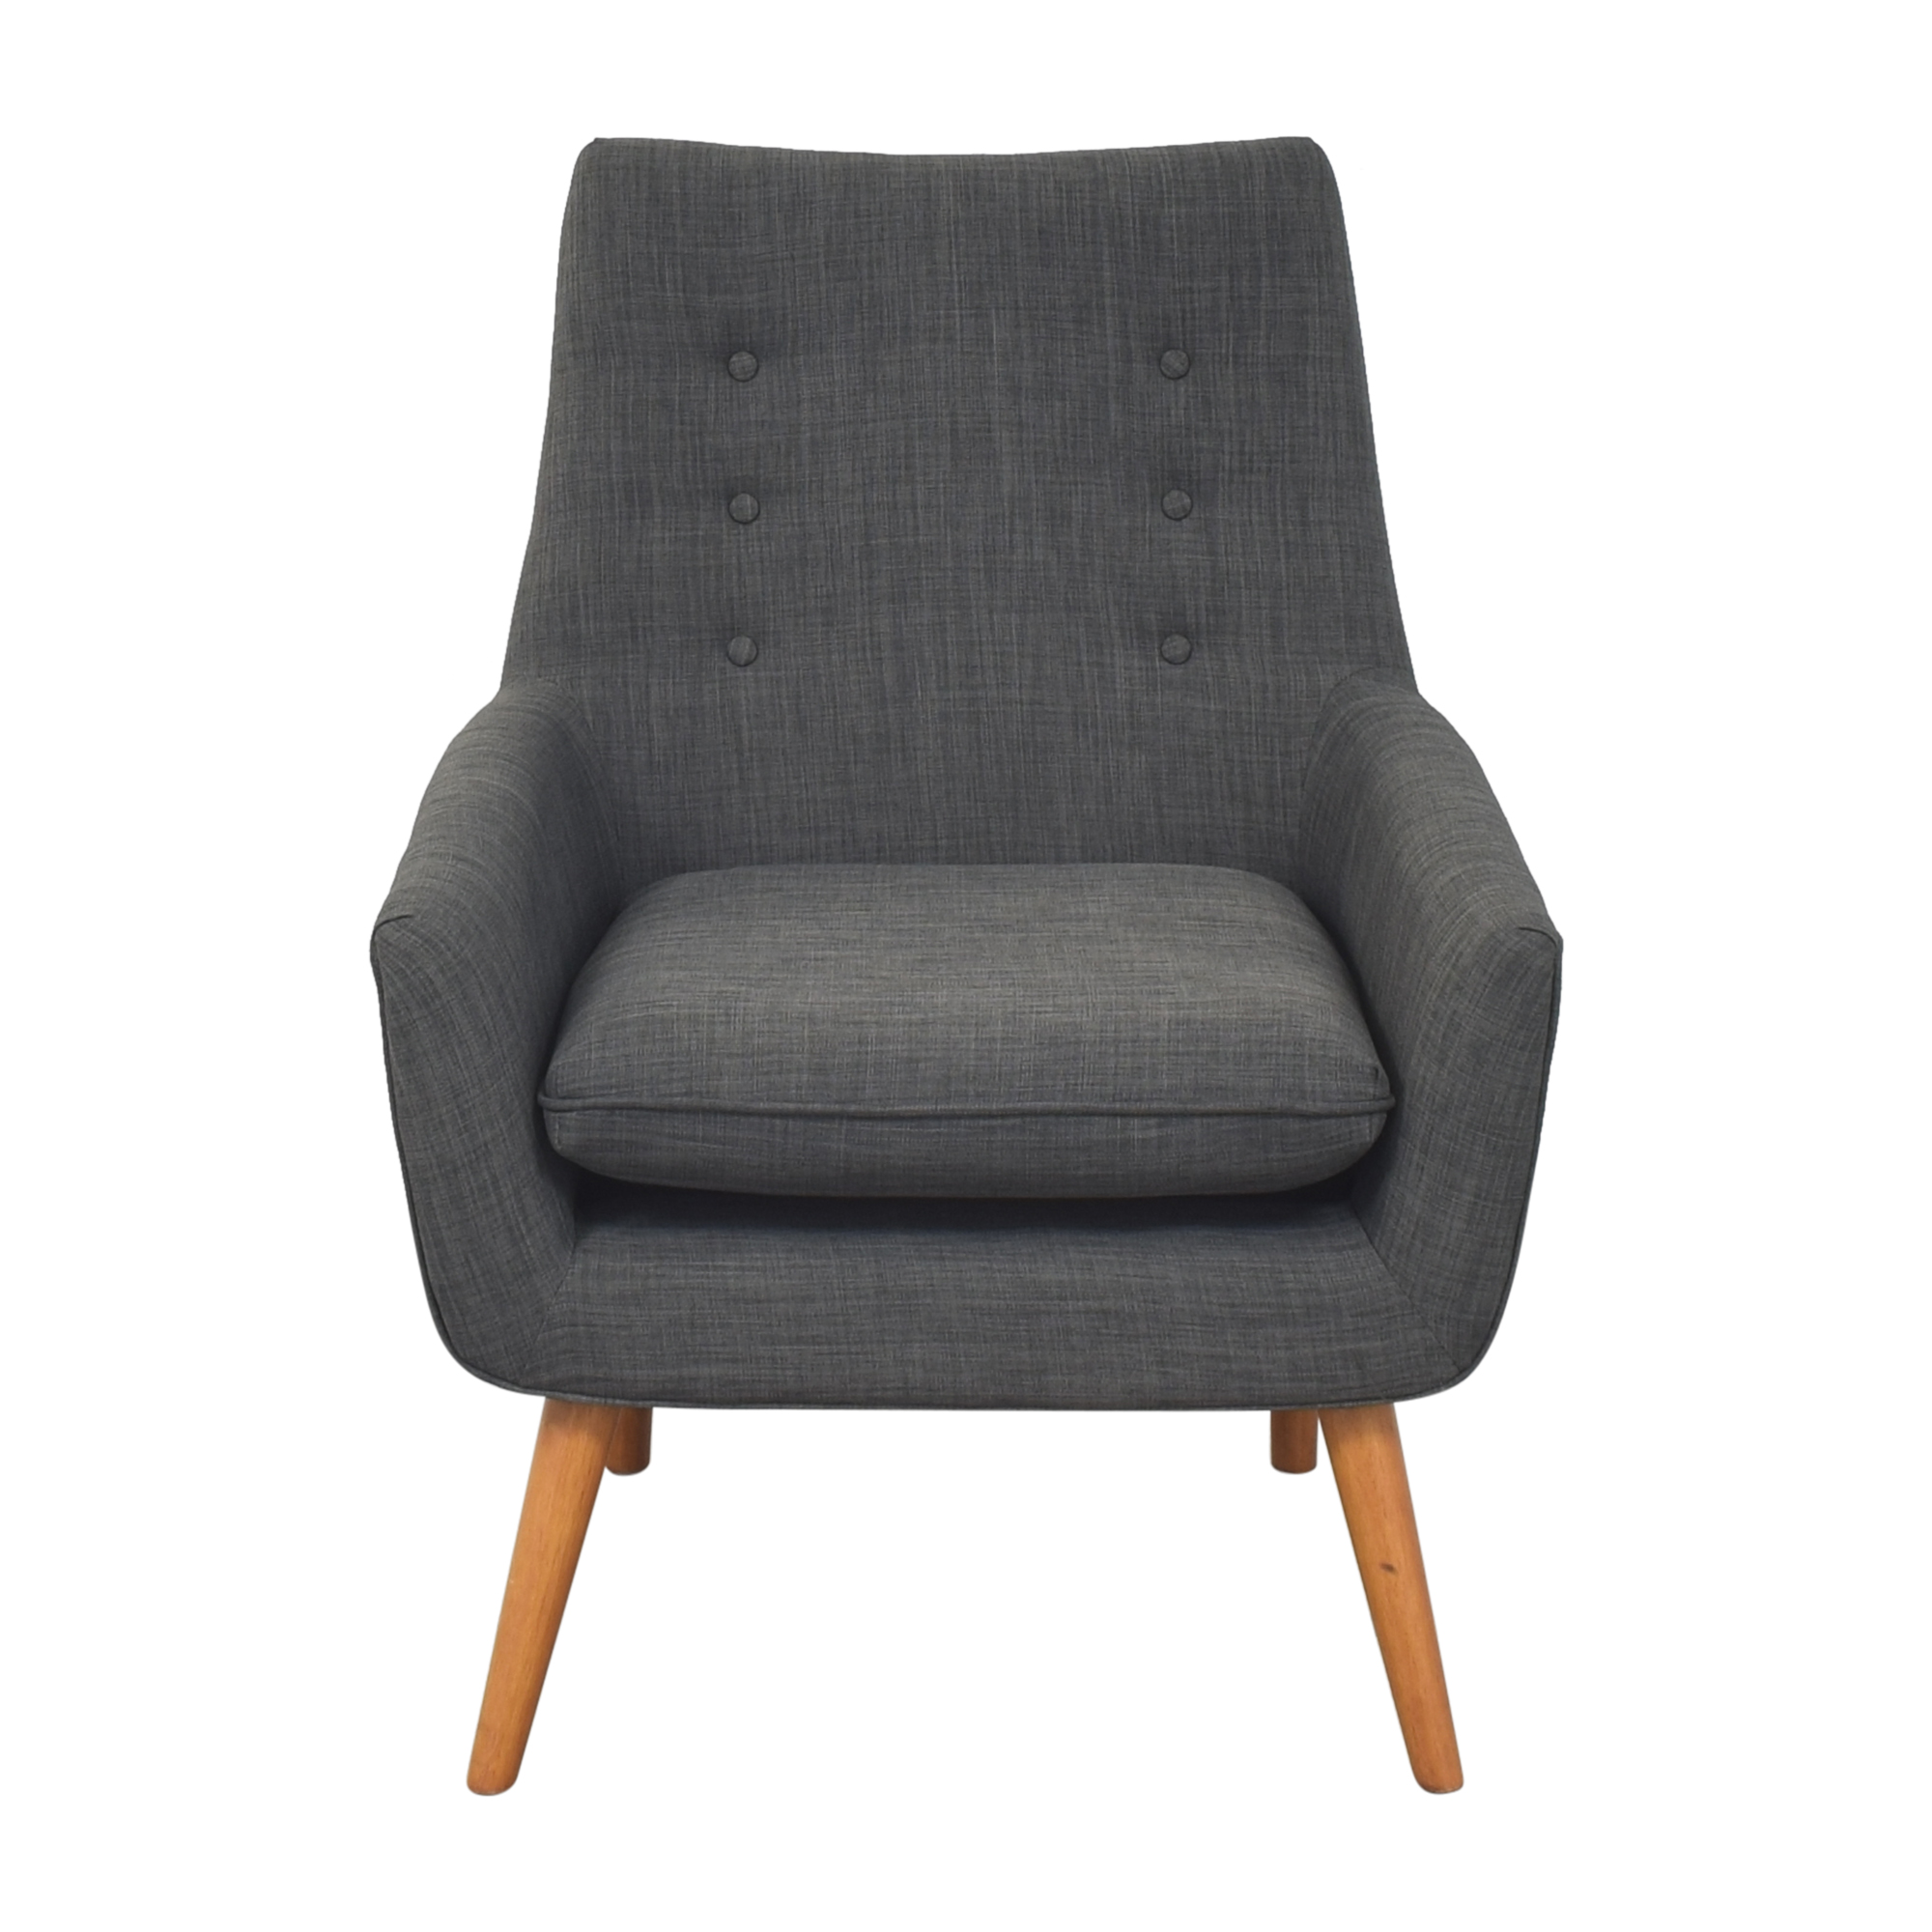 buy Adesso Modern Accent Chair Adesso Accent Chairs